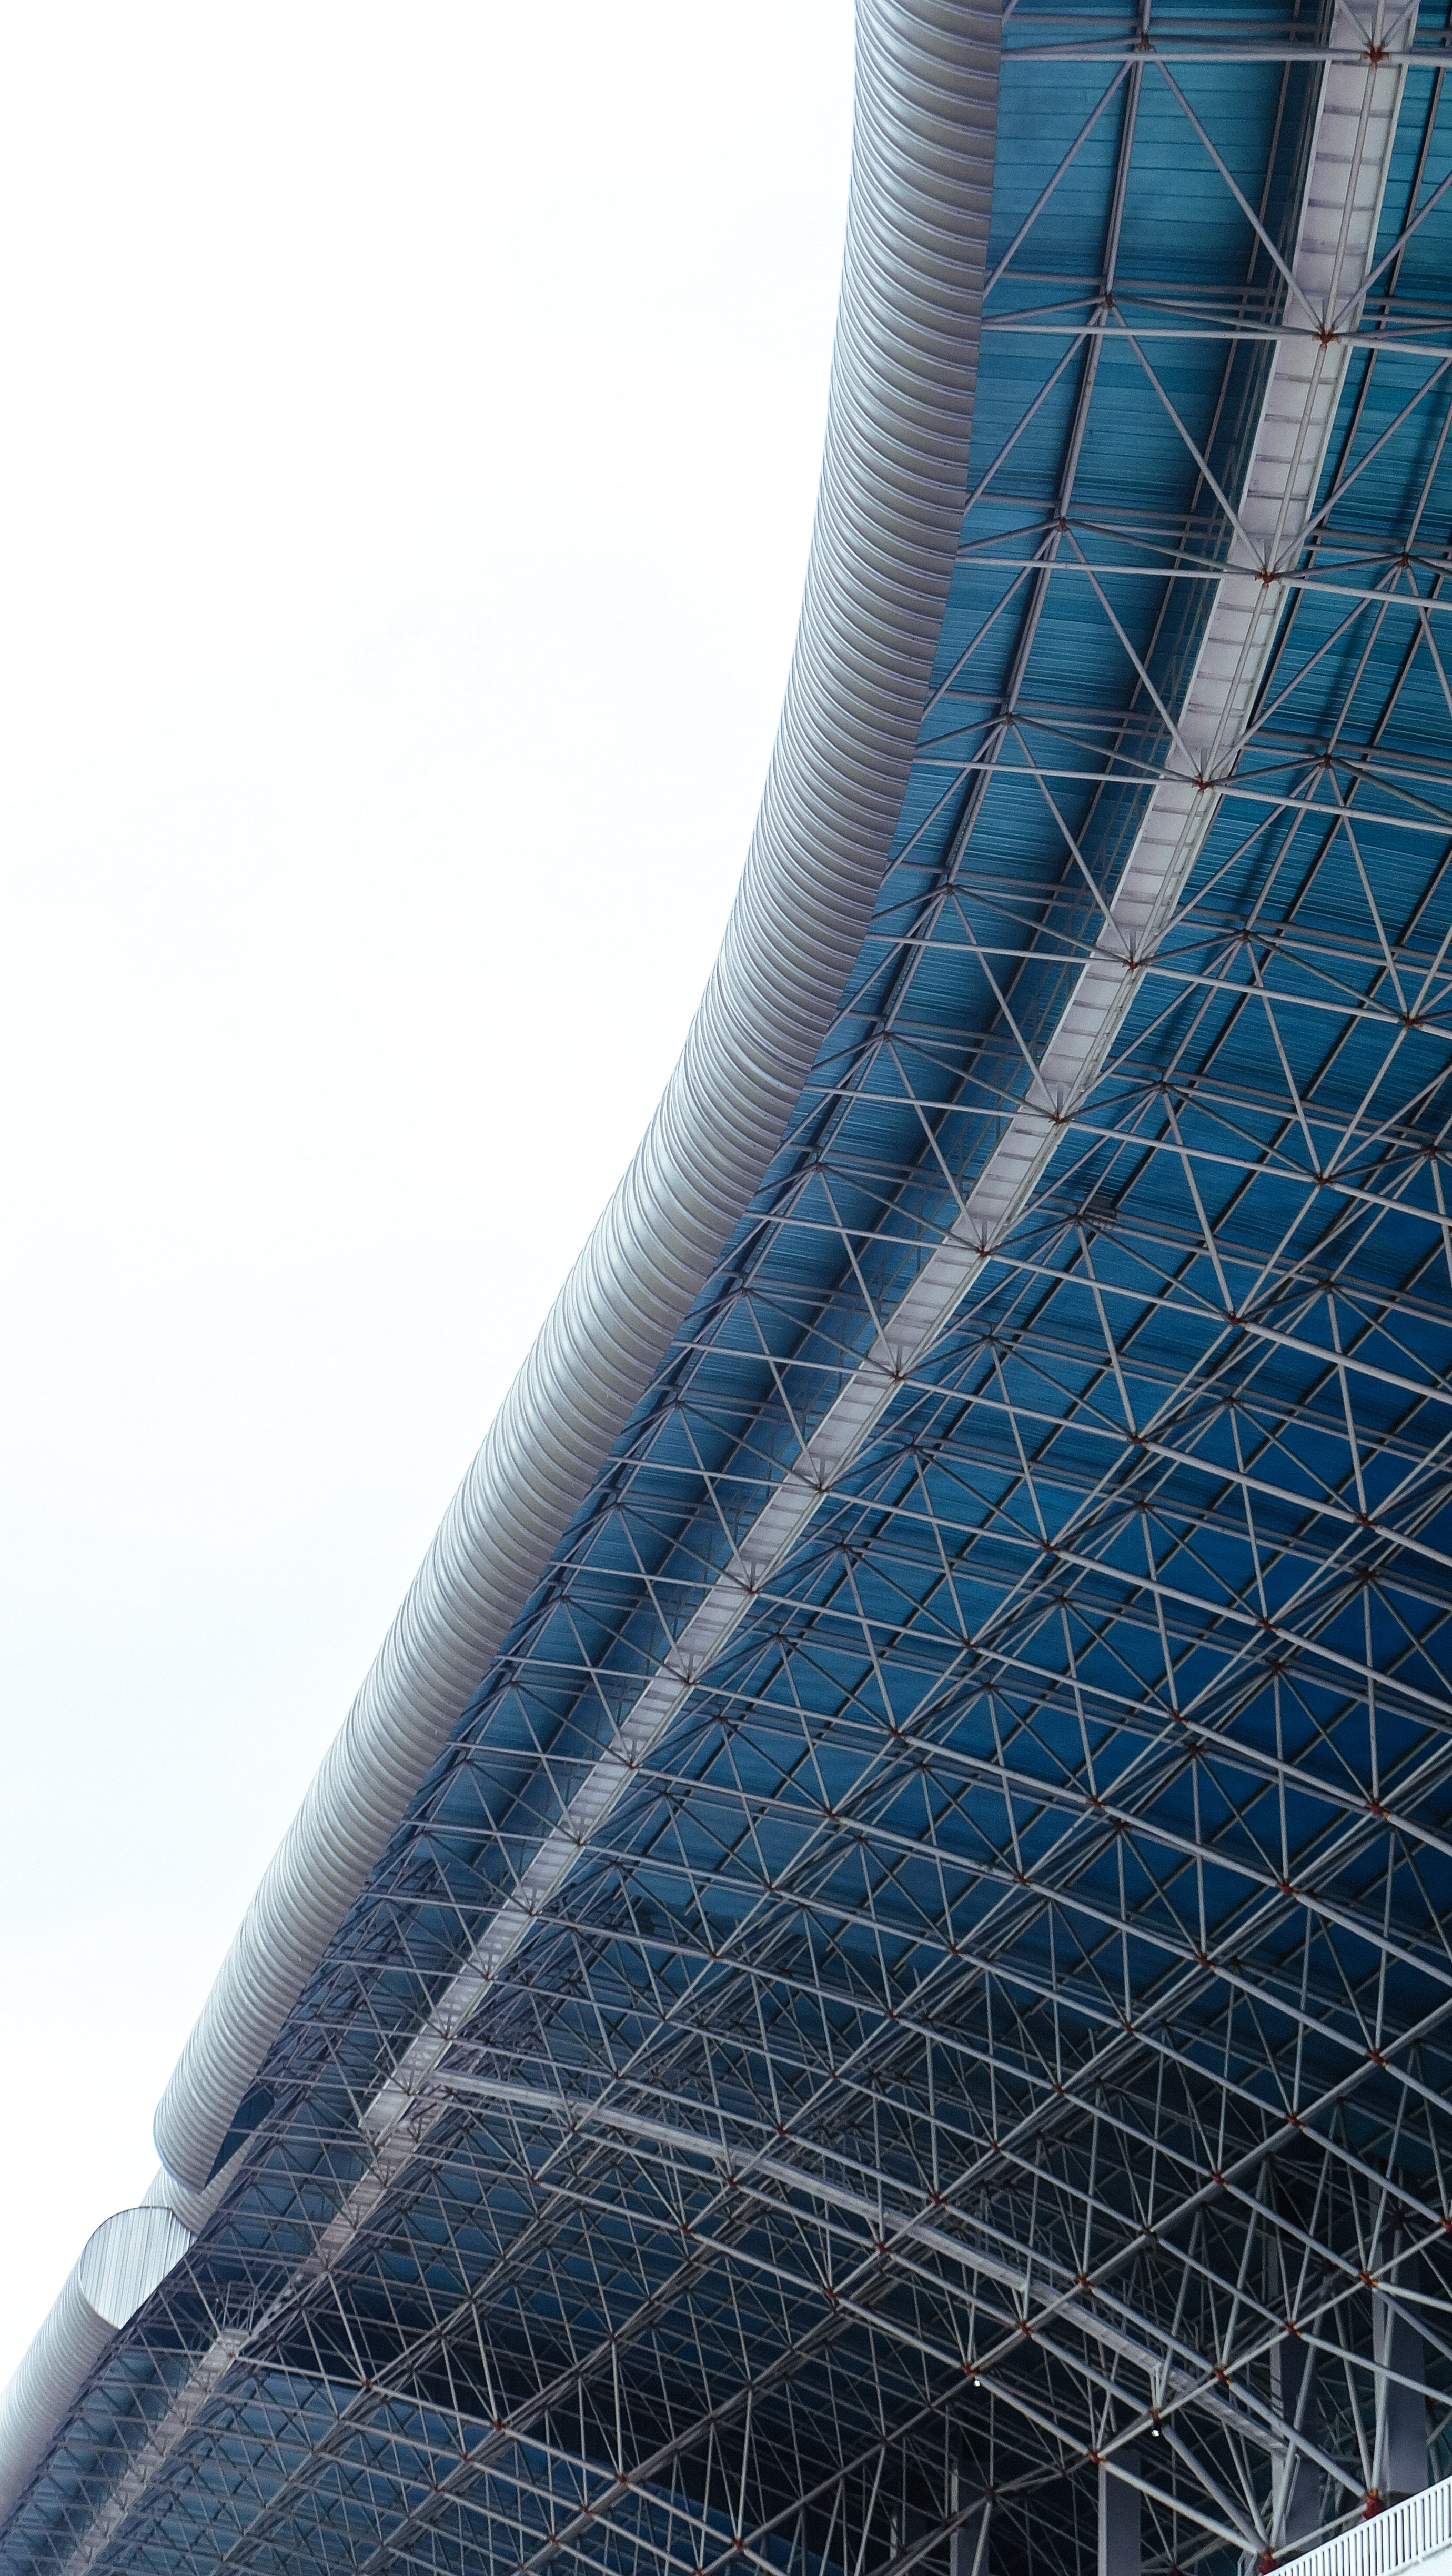 architectural photo of gray and blue metal building